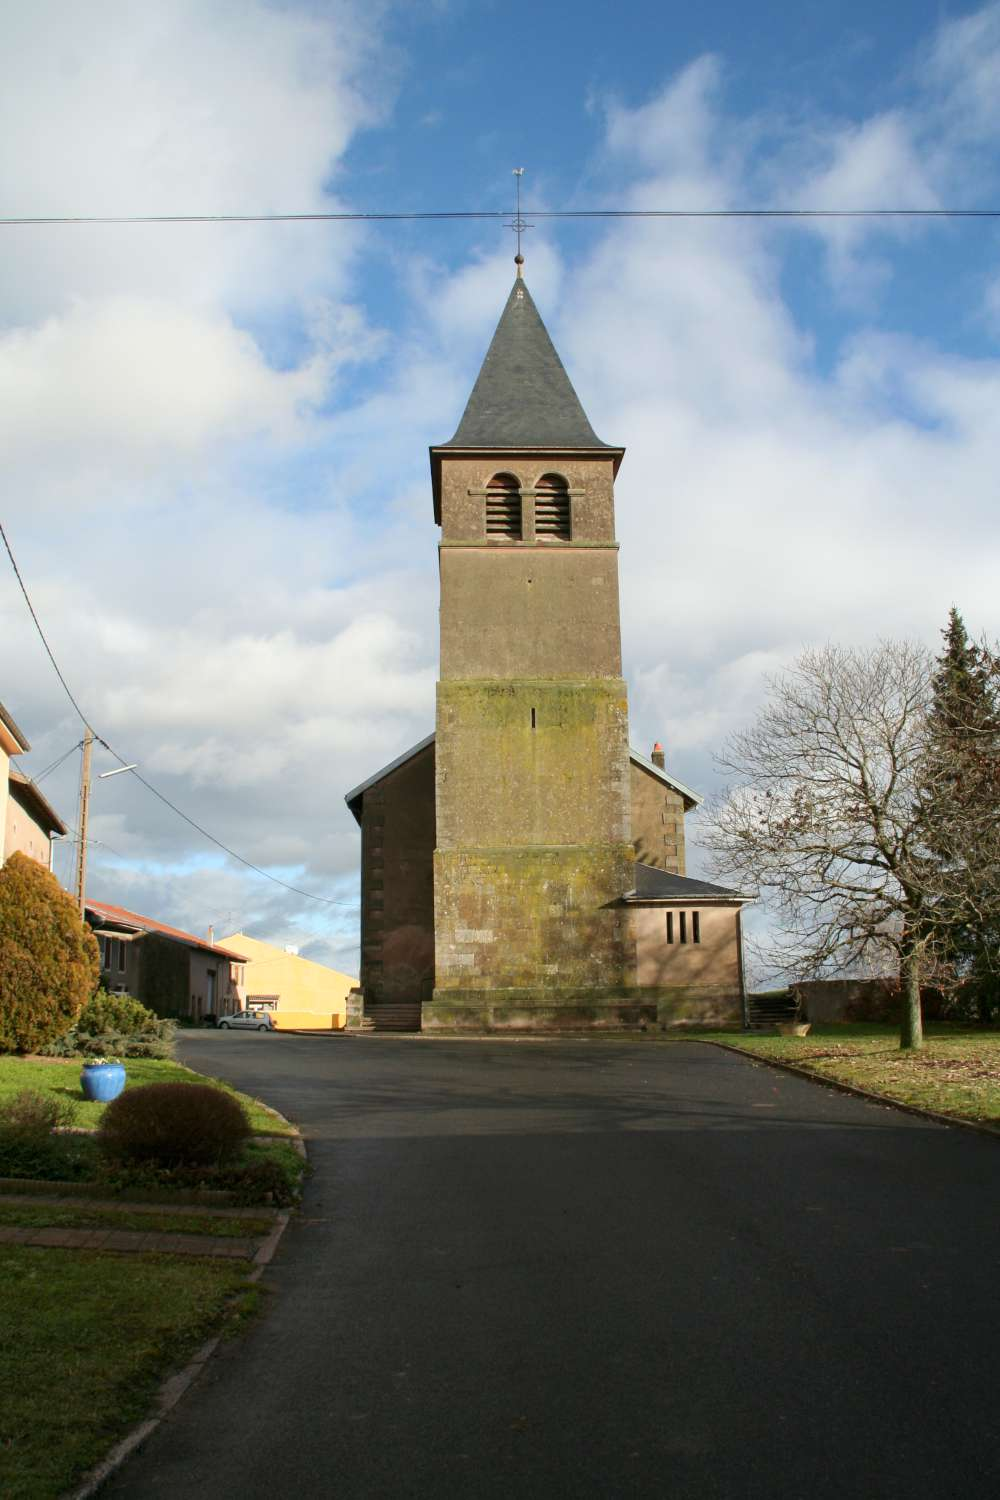 Eglise de Juvelize